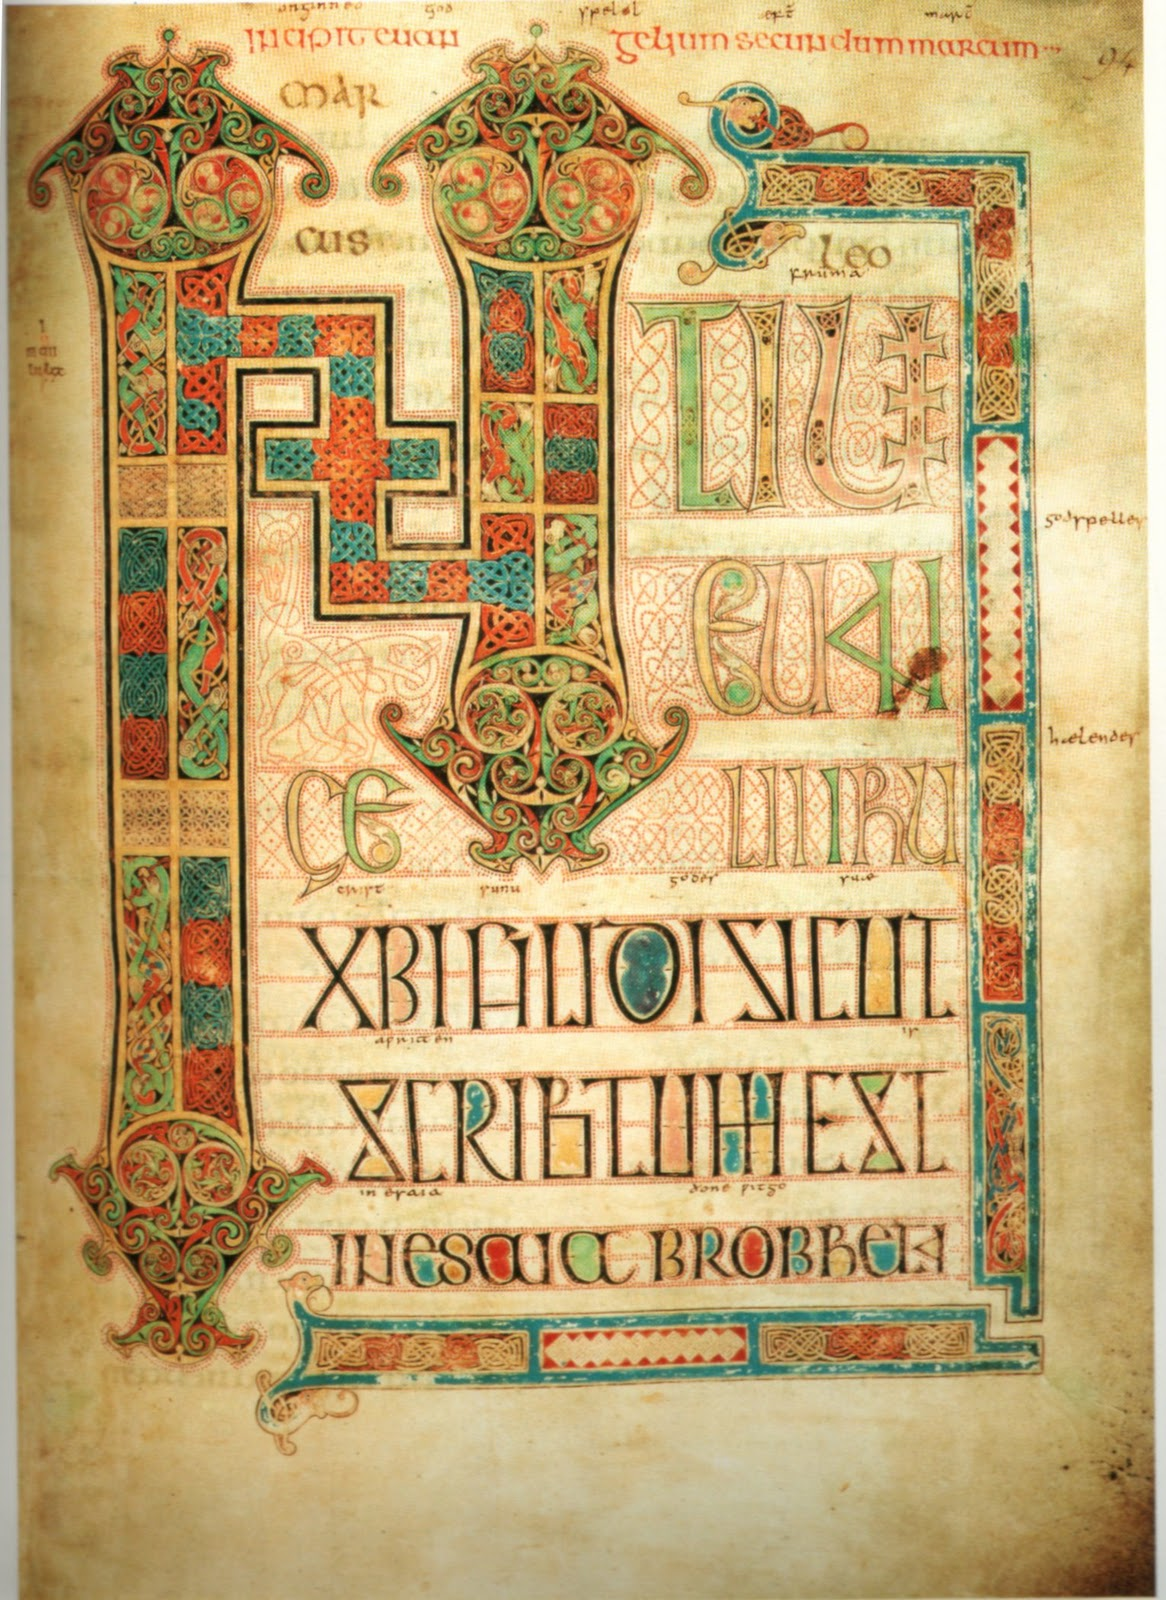 an illustrator u0026 39 s inspiration  the book of kells and the